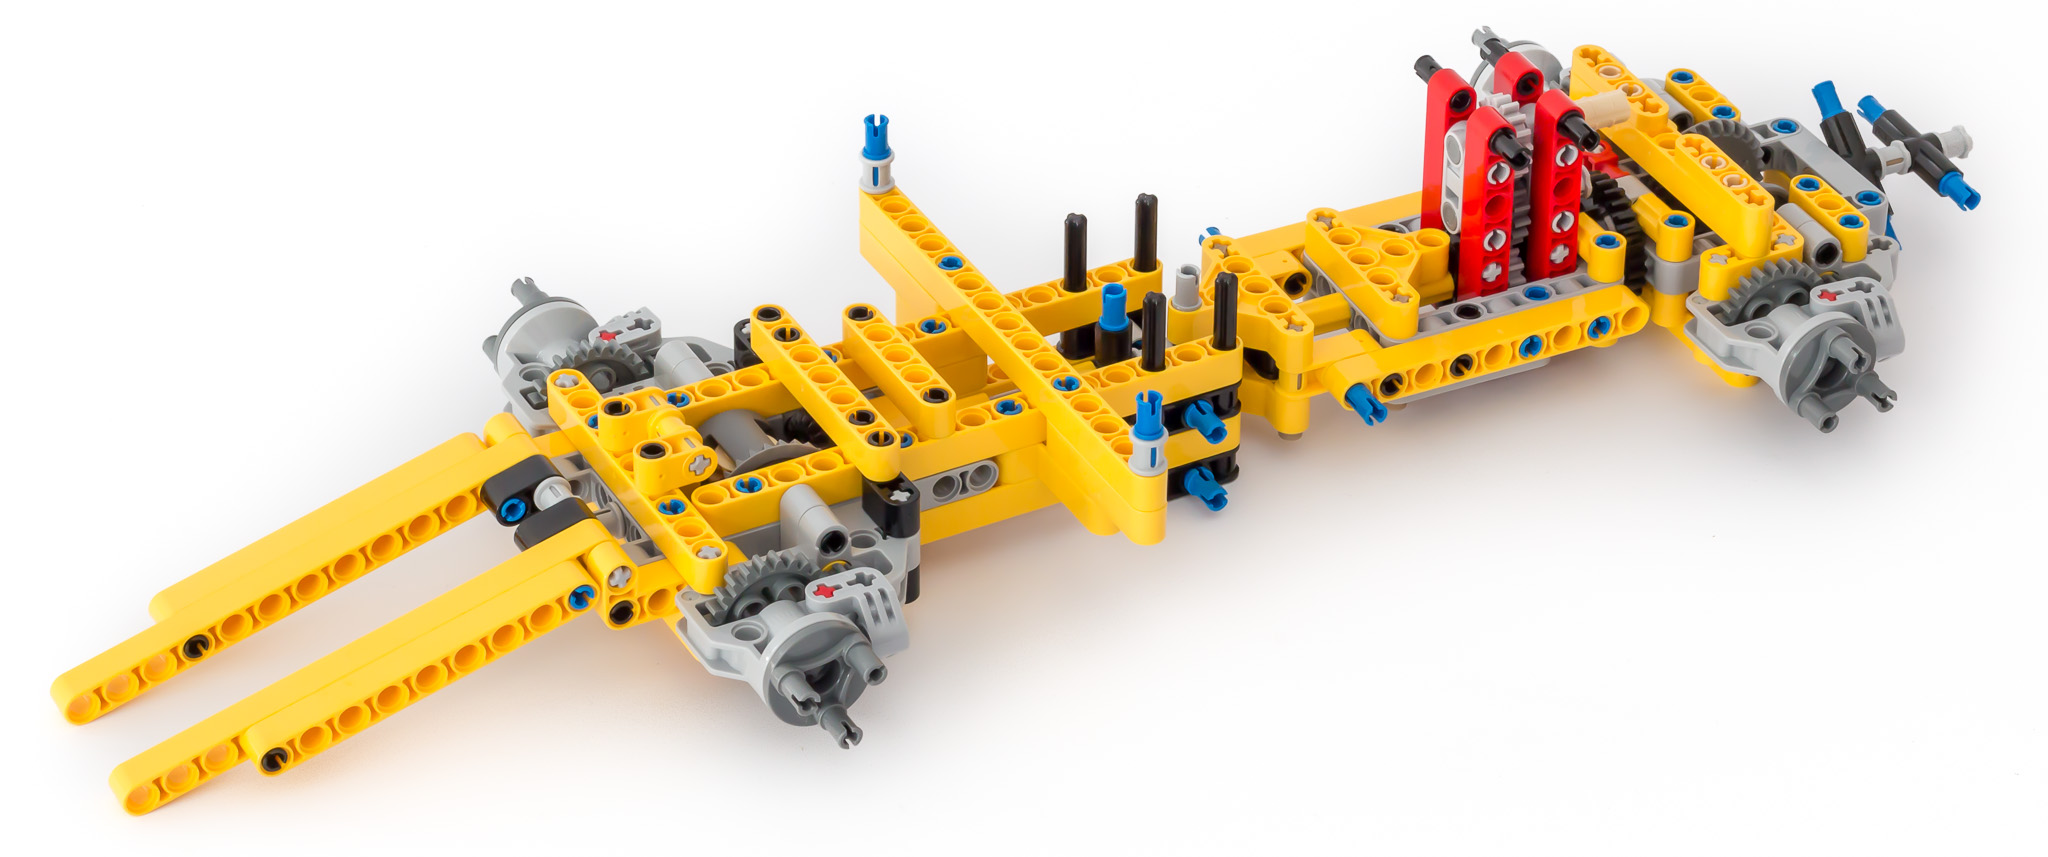 build a remote control car with 42030 Volvo L350f Wheel Loader on Lego Logo Wallpaper in addition Lawnbot400 furthermore Arduino further Rc 20drift 20cars additionally Iot.